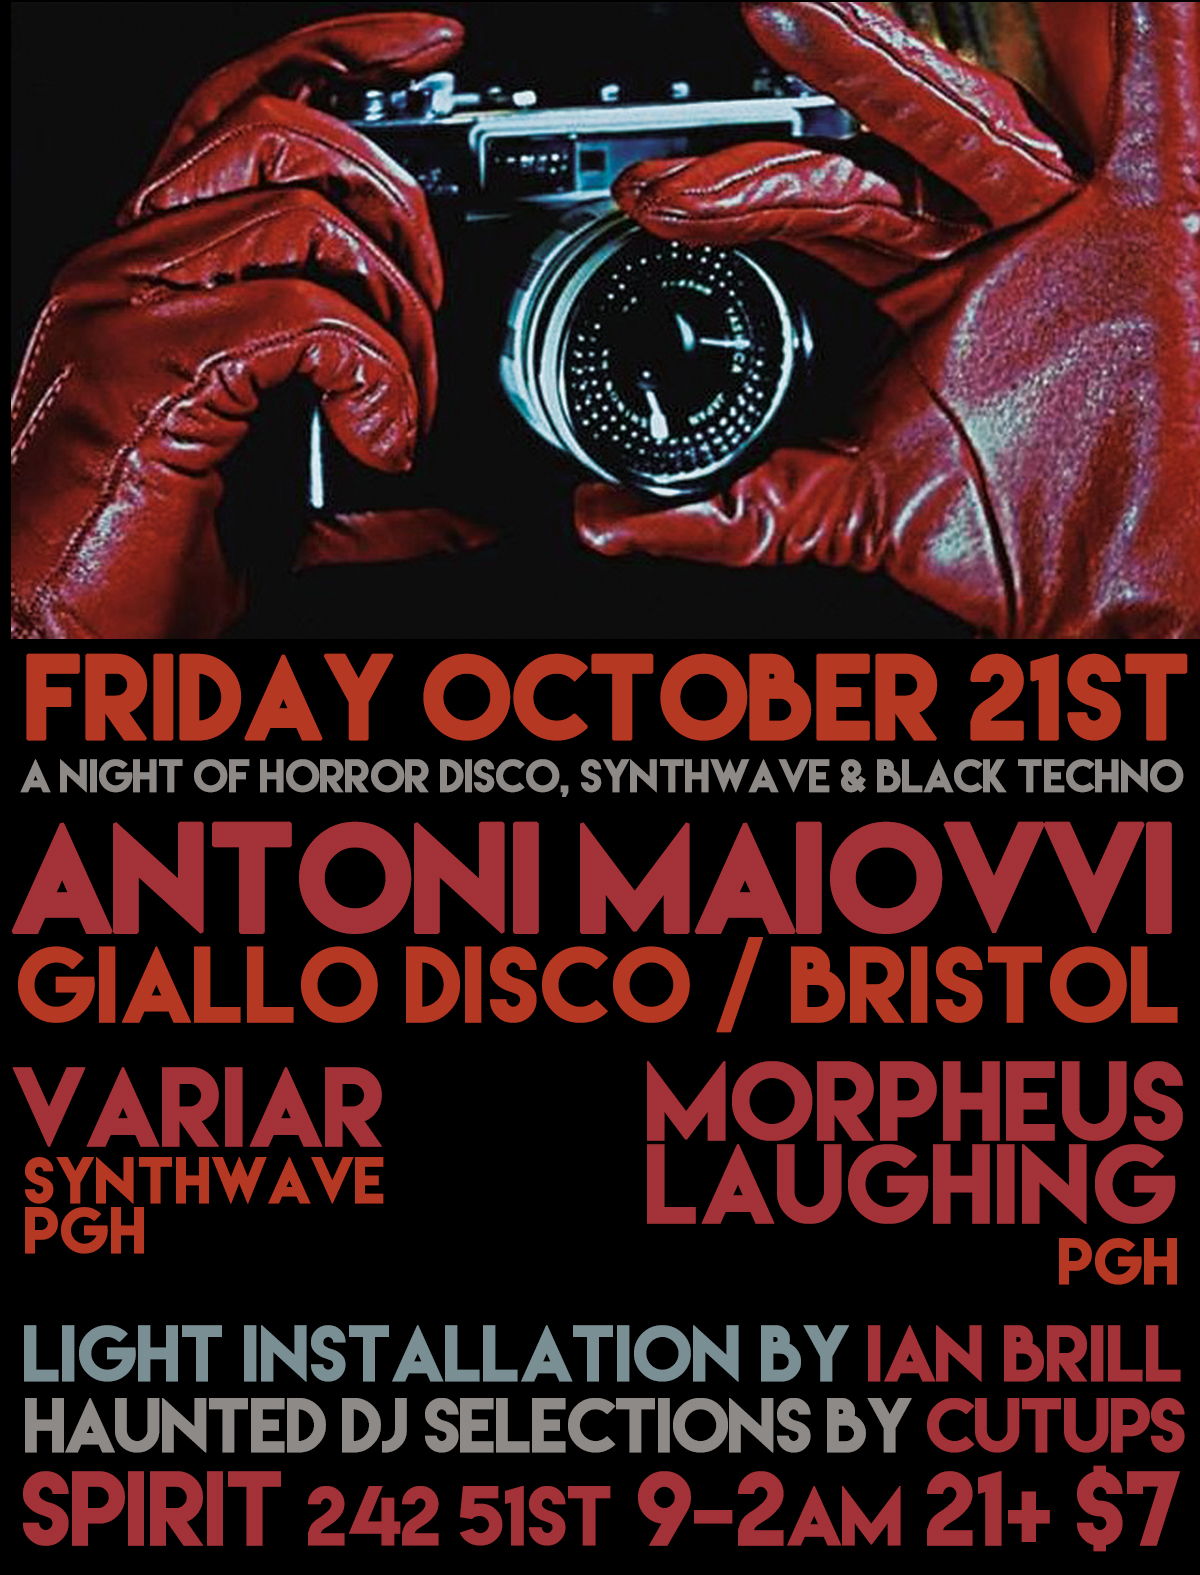 Fri Oct 21st ANTONI MAOIVVI [Giallo Disco, Bristol], Variar, Morpheus Laughing, Cutups at Spirit